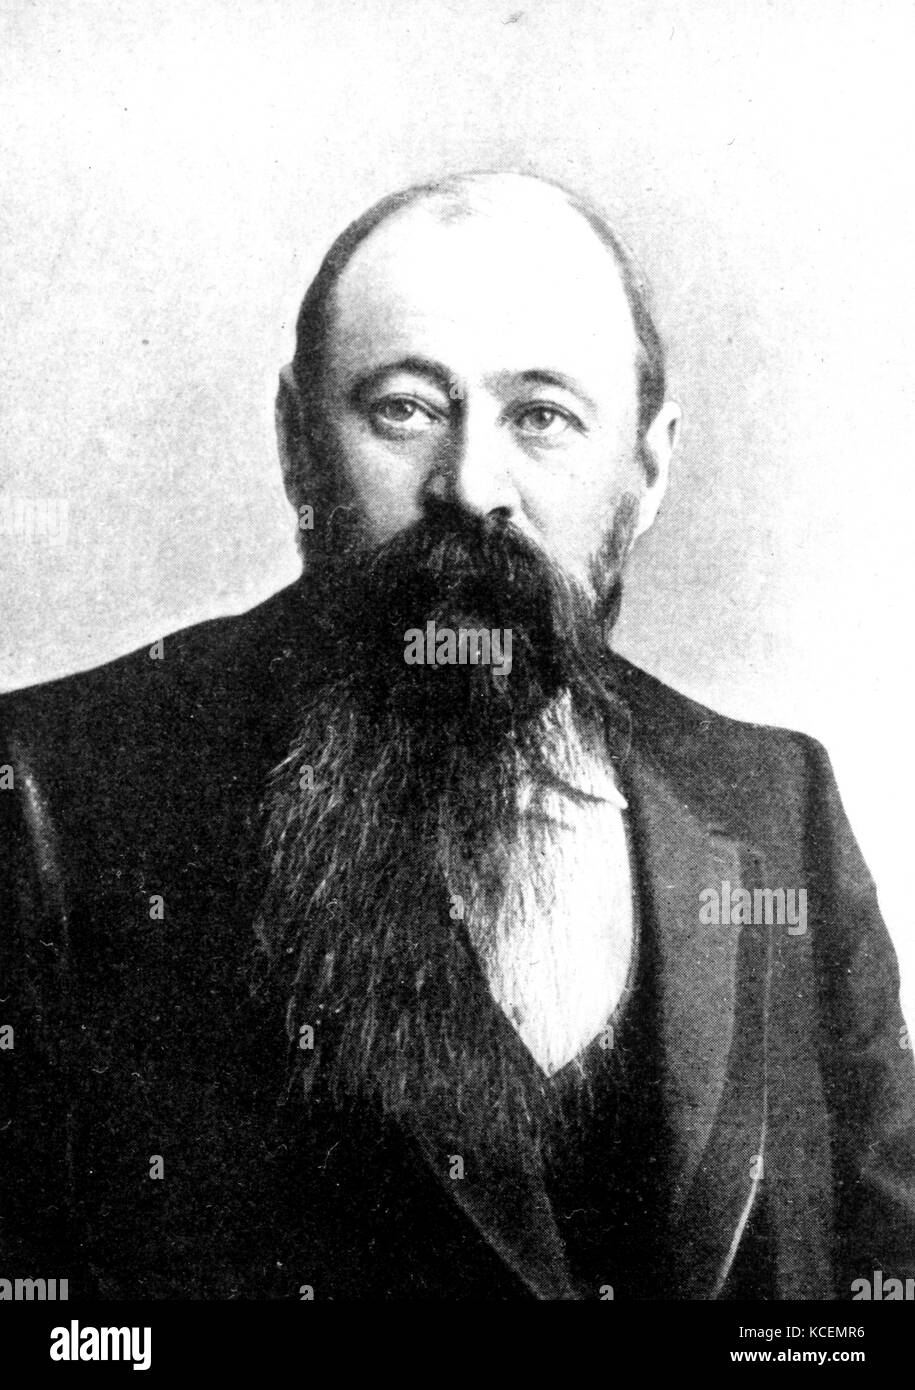 Martinus (or Marthinus) Theunis Steyn (1857 – 1916) was a South African lawyer, politician, and statesman, sixth - Stock Image